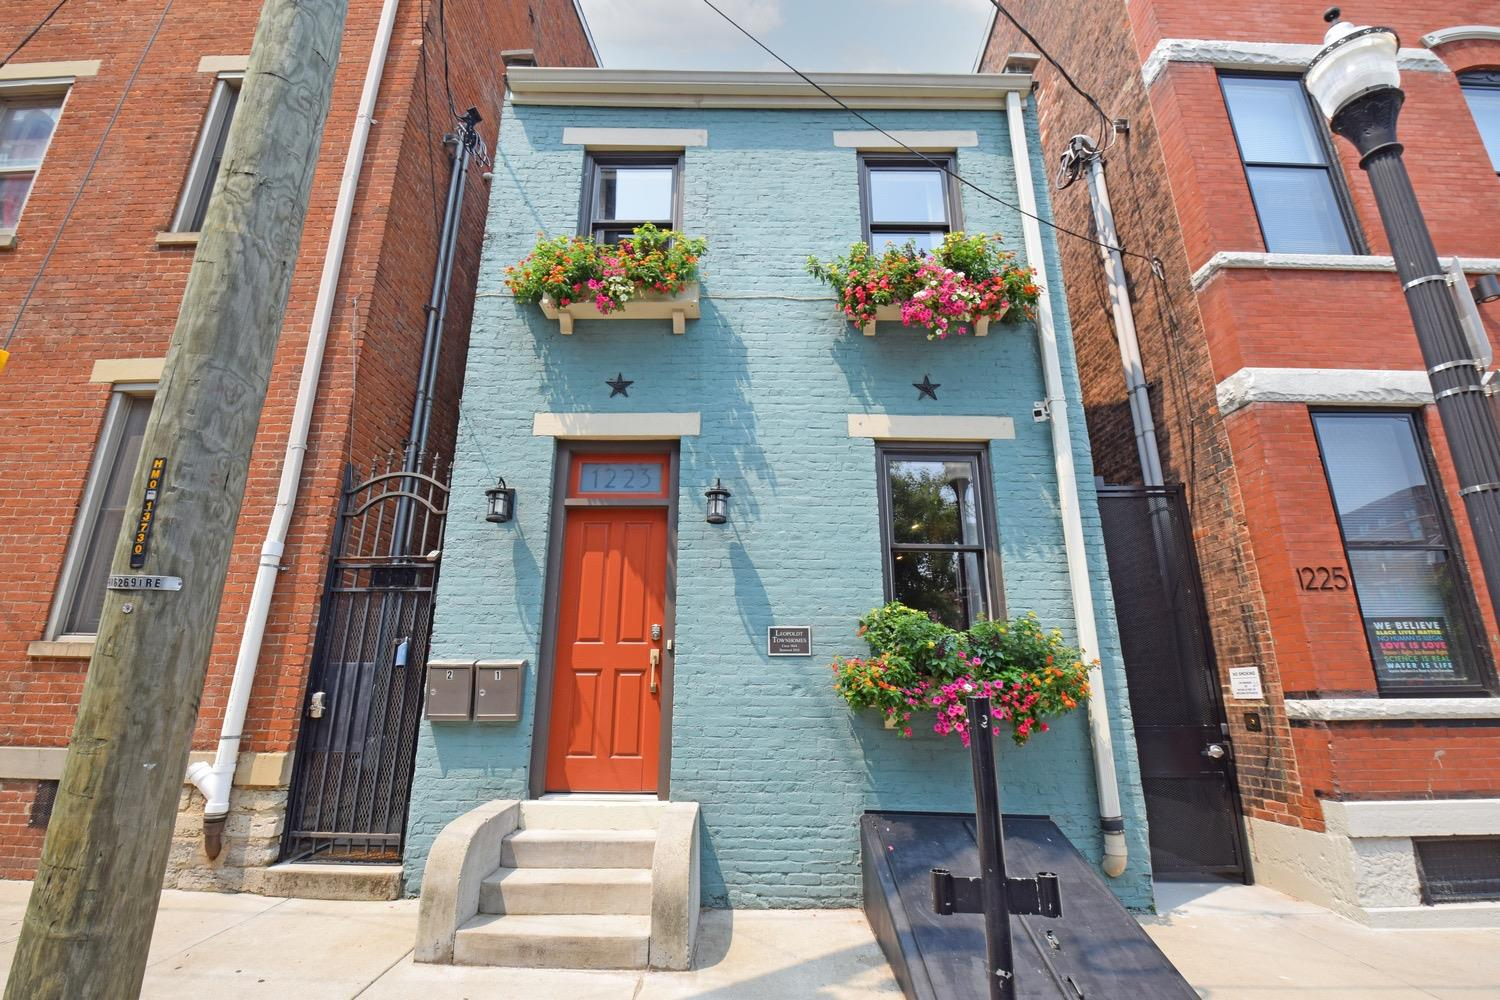 Beautiful restoration with private entry to Unit #1 at street level.  Unit 2 entry is through gate on side of building